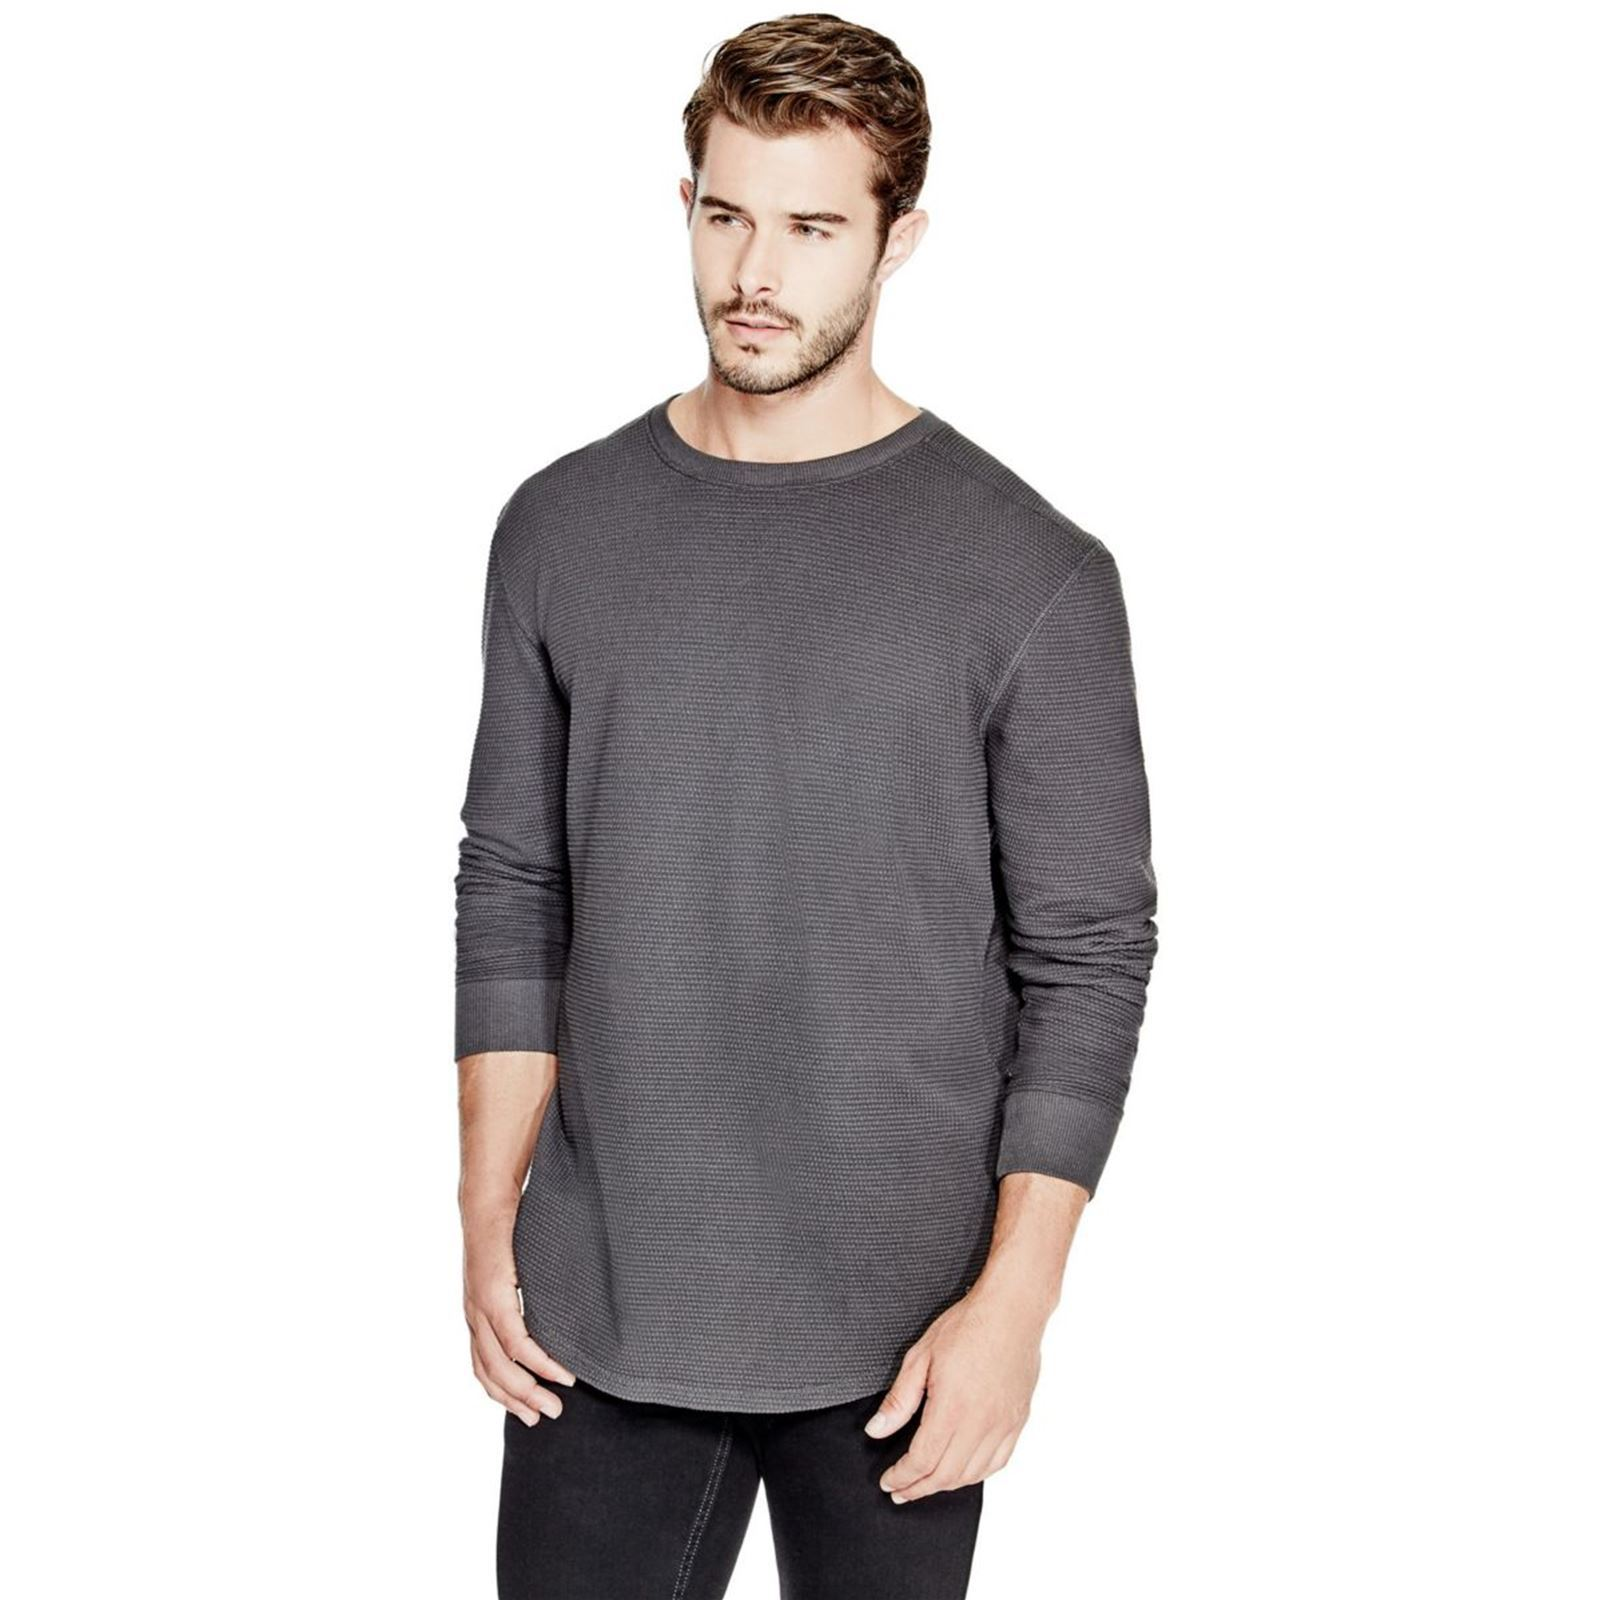 Sweat Homme V Homme Guess Sweat shirtGris Sweat Homme shirtGris shirtGris V Guess Guess ZuiOPXTwkl